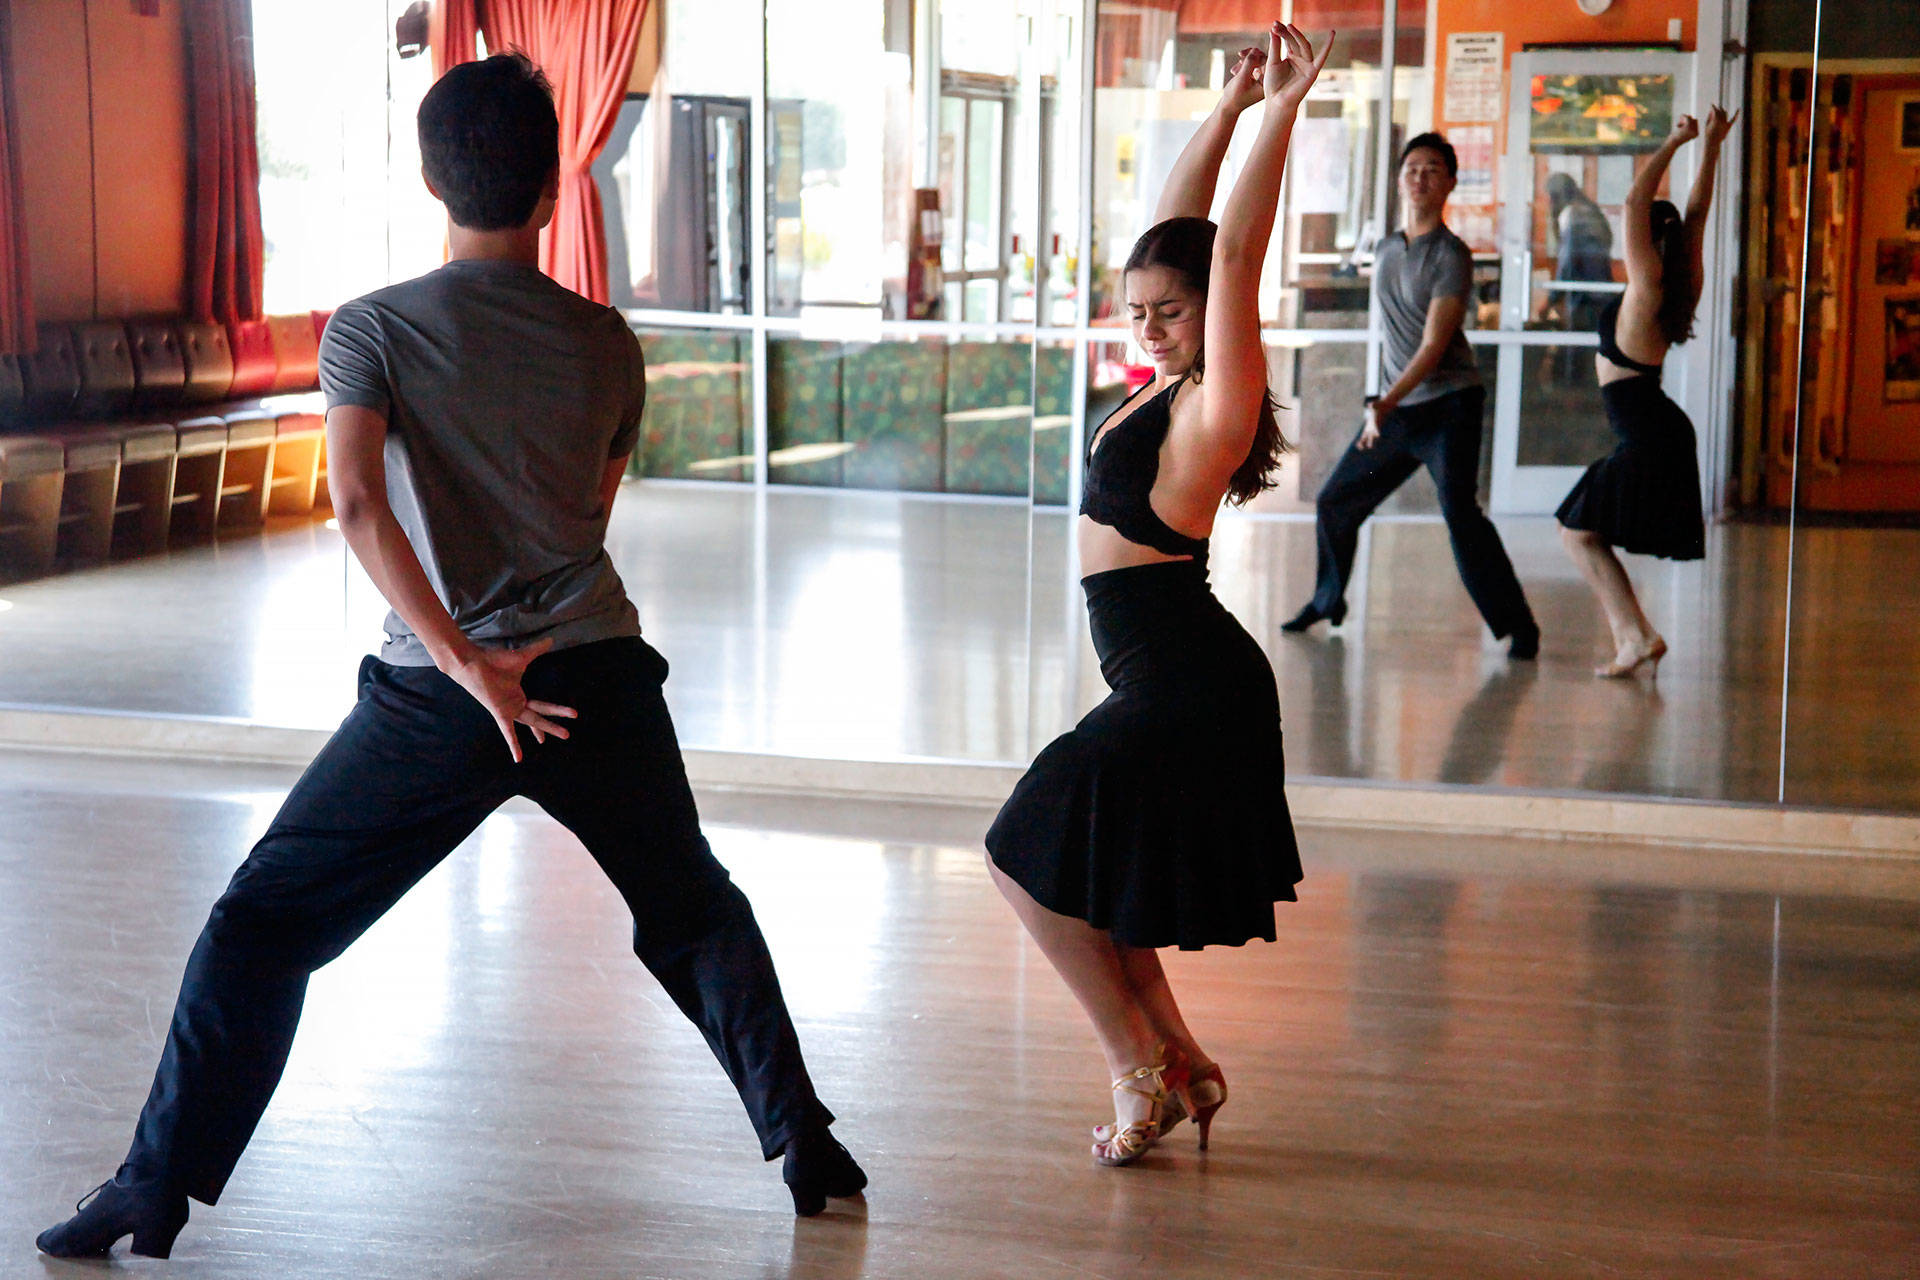 Bumchin Tegshjargal started dancing with his partner. Michelle Klets, a year and a half ago. In that short time, they've become one of the country's top young couples in Latin dance.  Brittany Hosea-Small/KQED